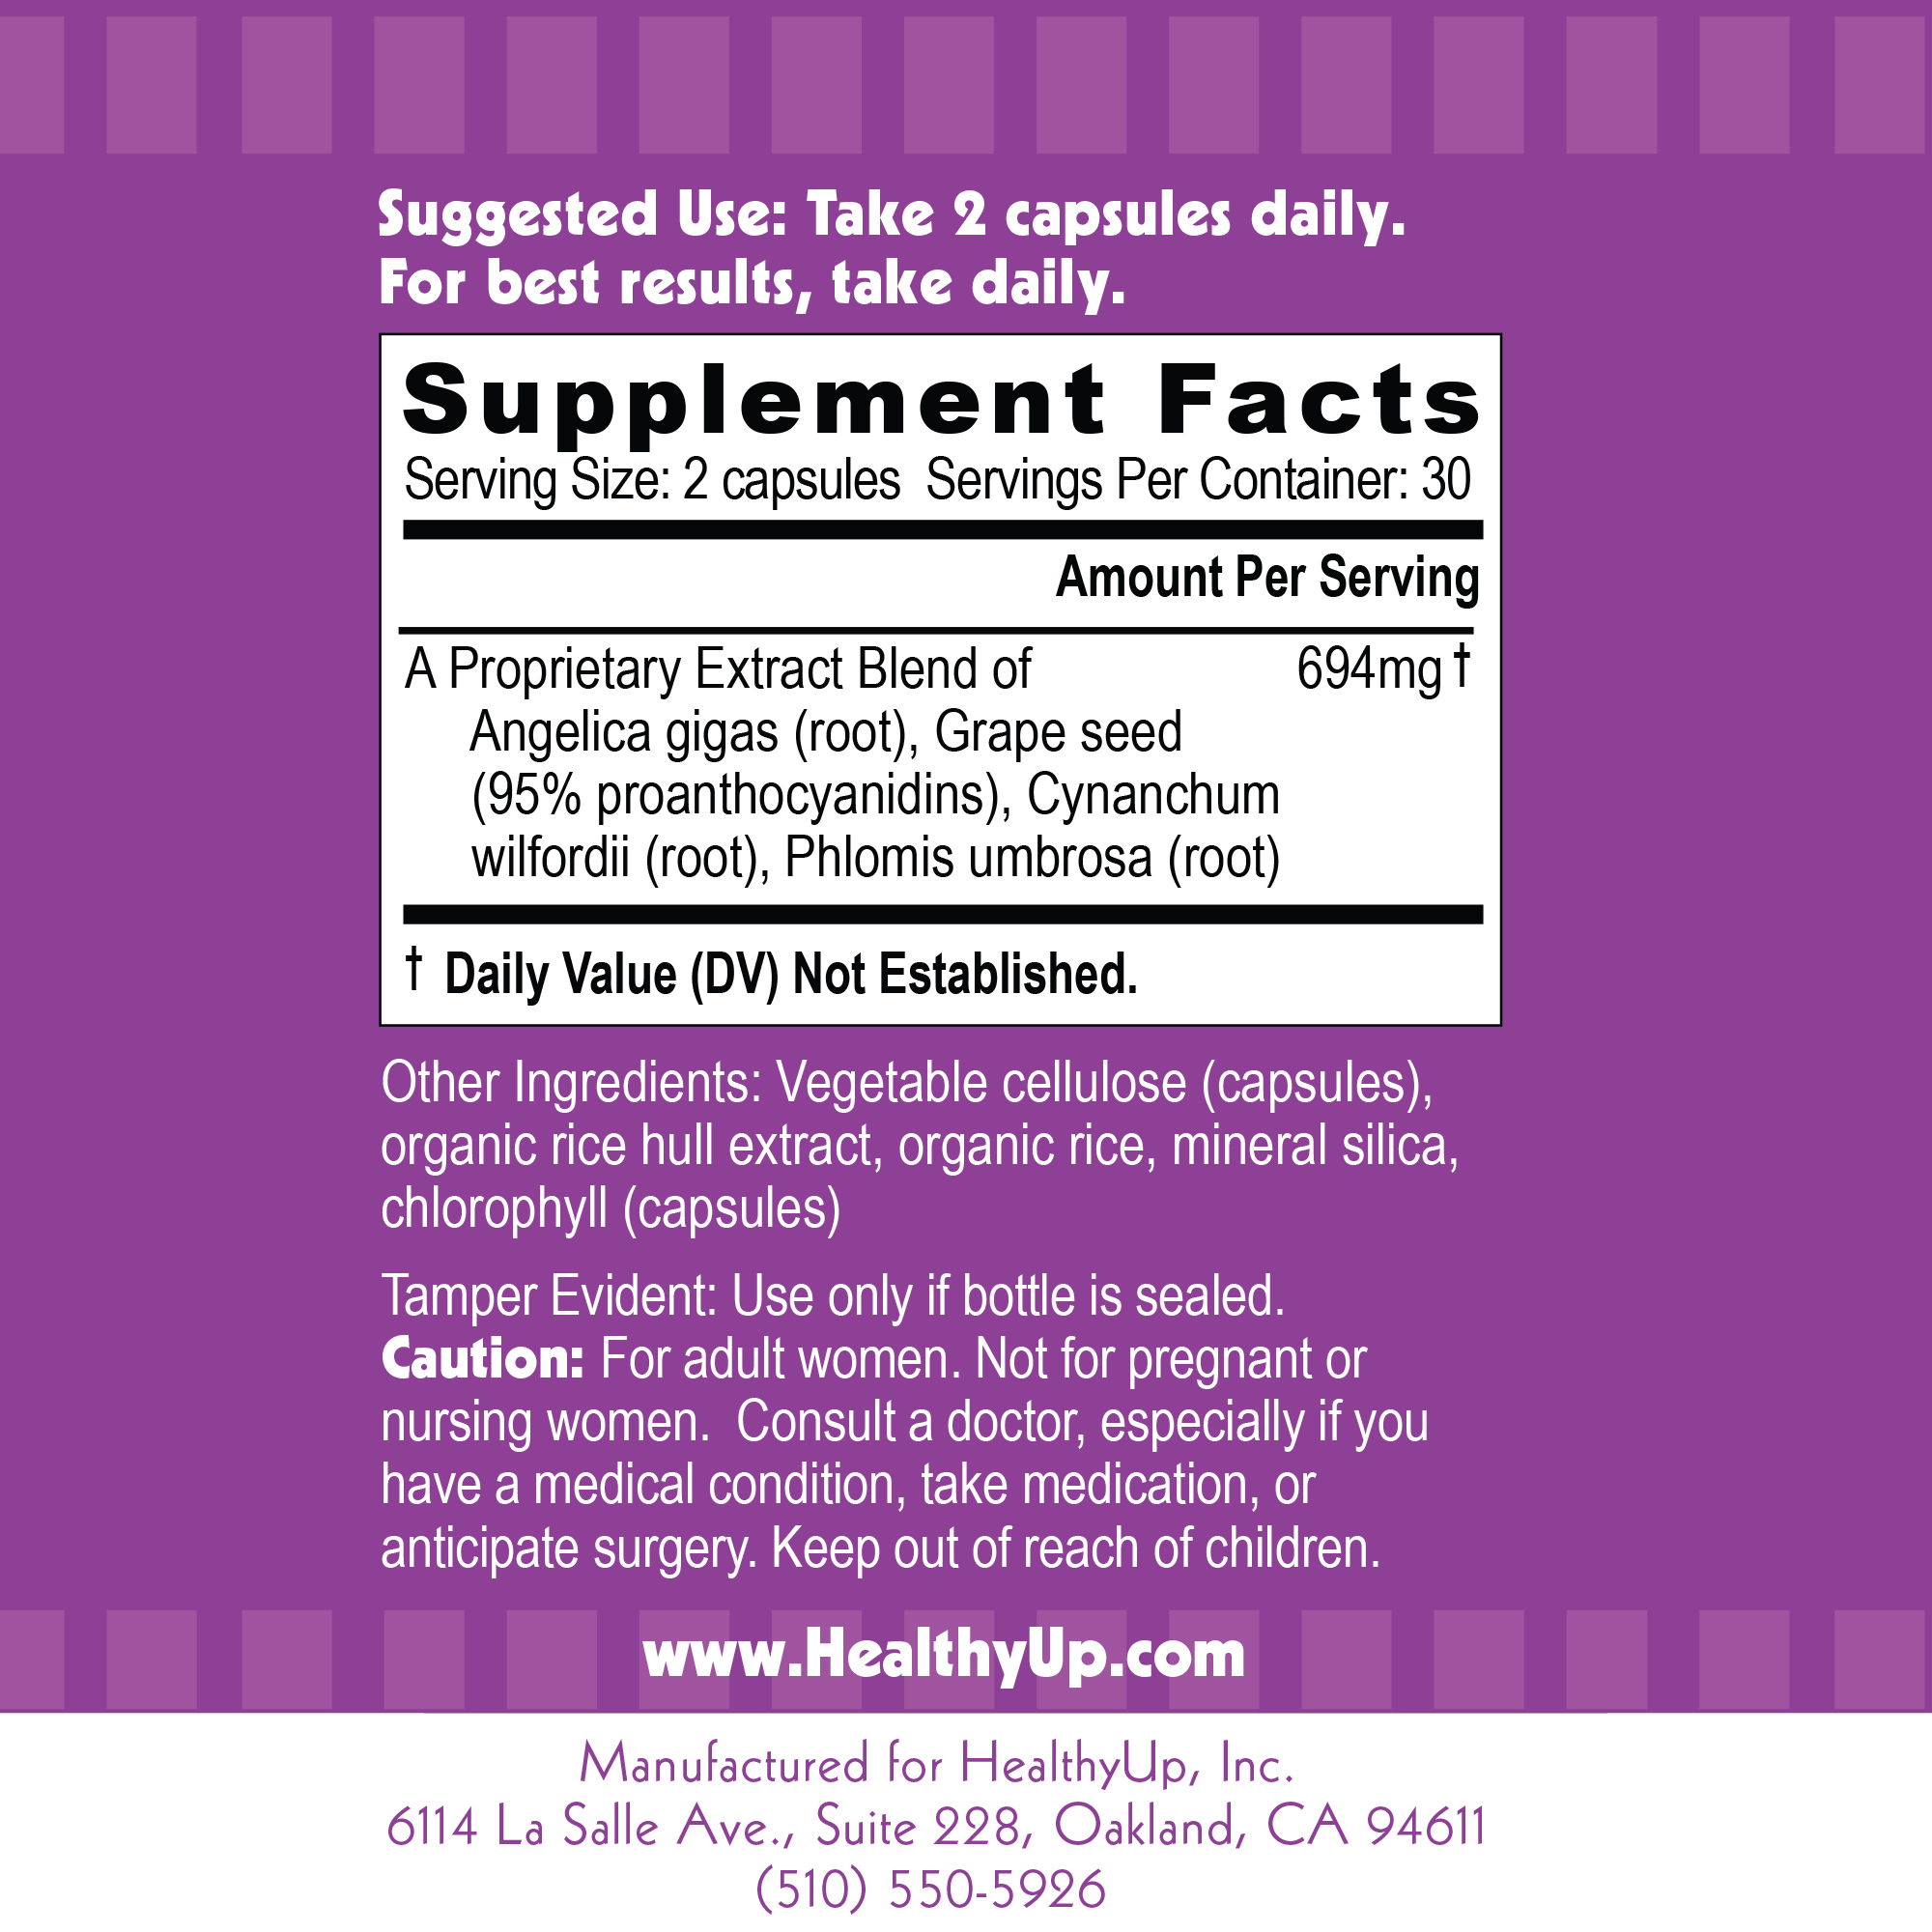 HealthyUp Supplement Facts Label